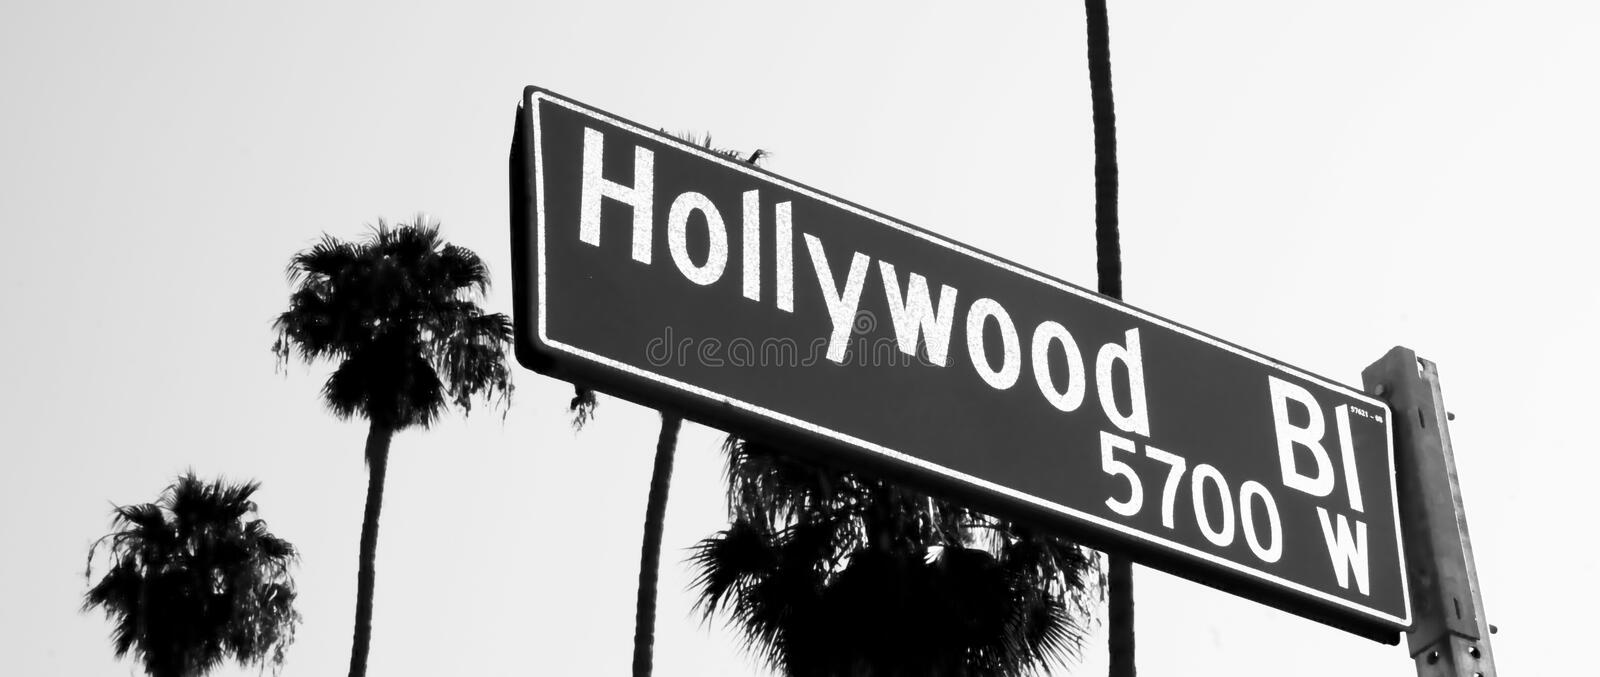 Hollywood Blvd Street Sign Cityscape California royalty free stock photos